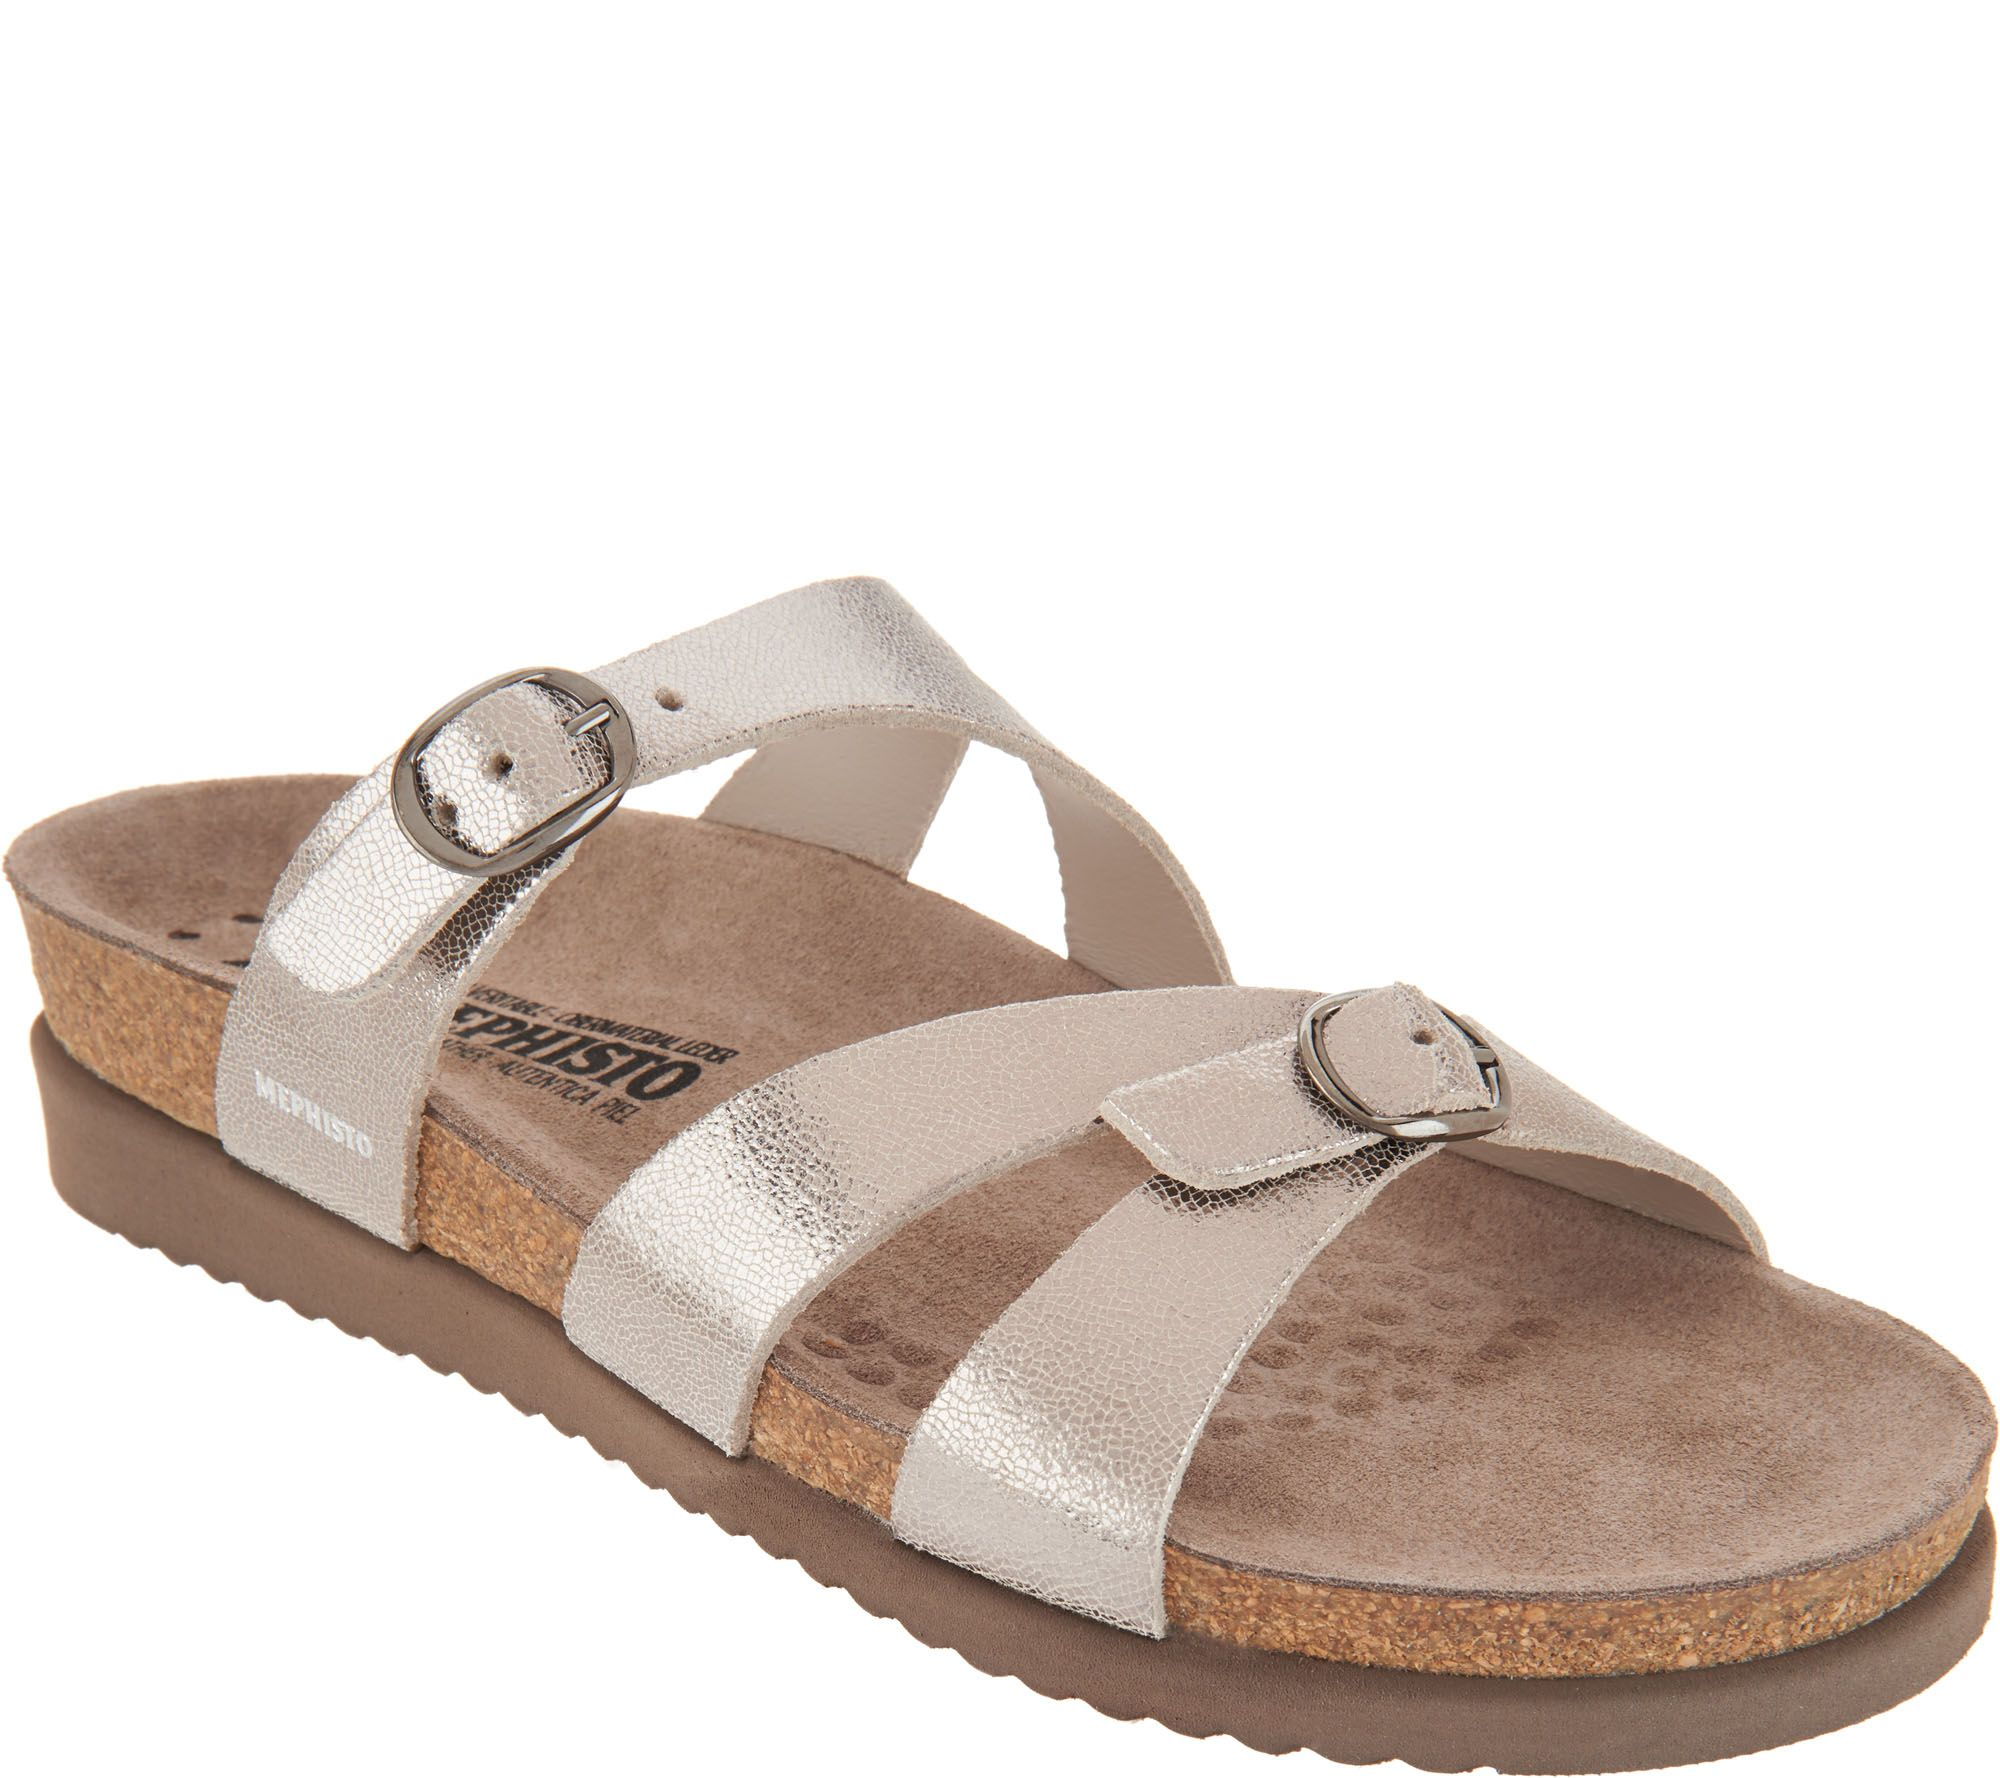 405f3cae396 MEPHISTO Leather Double Strap Slide Sandals - Hannel - Page 1 — QVC.com